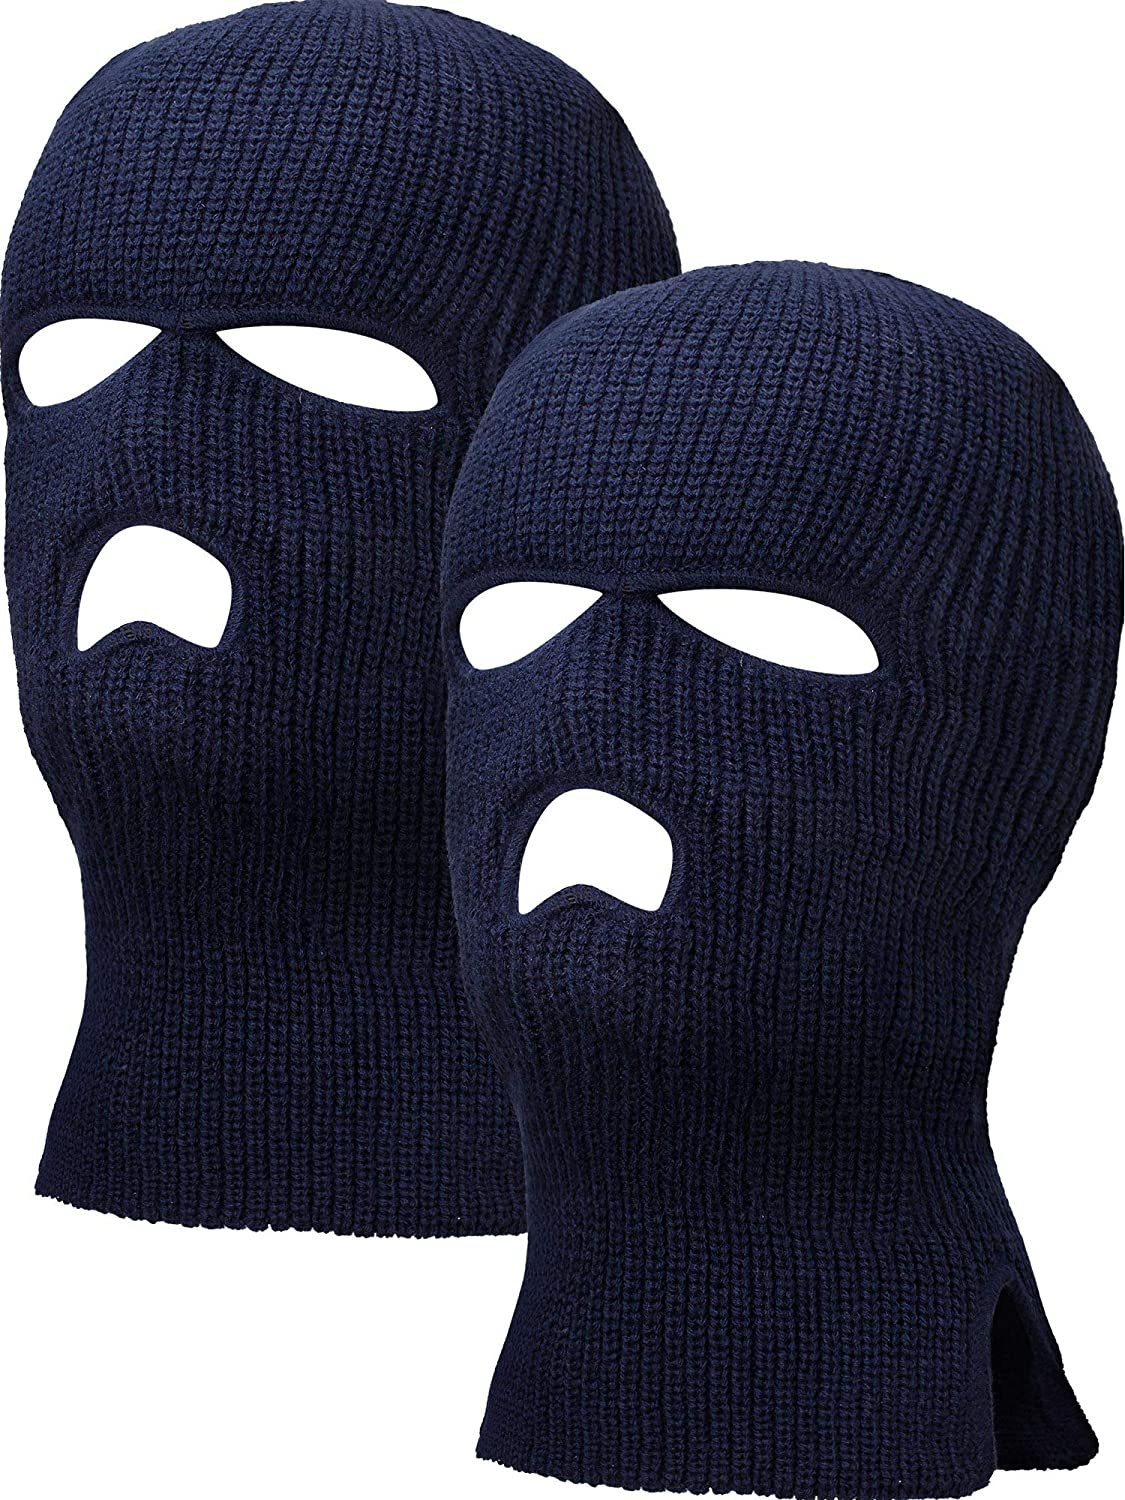 2 Pieces 3-Hole Ski Mask Knitted Face Cover Winter Balaclava Full Face Mask for Winter Outdoor Sports EBOOT